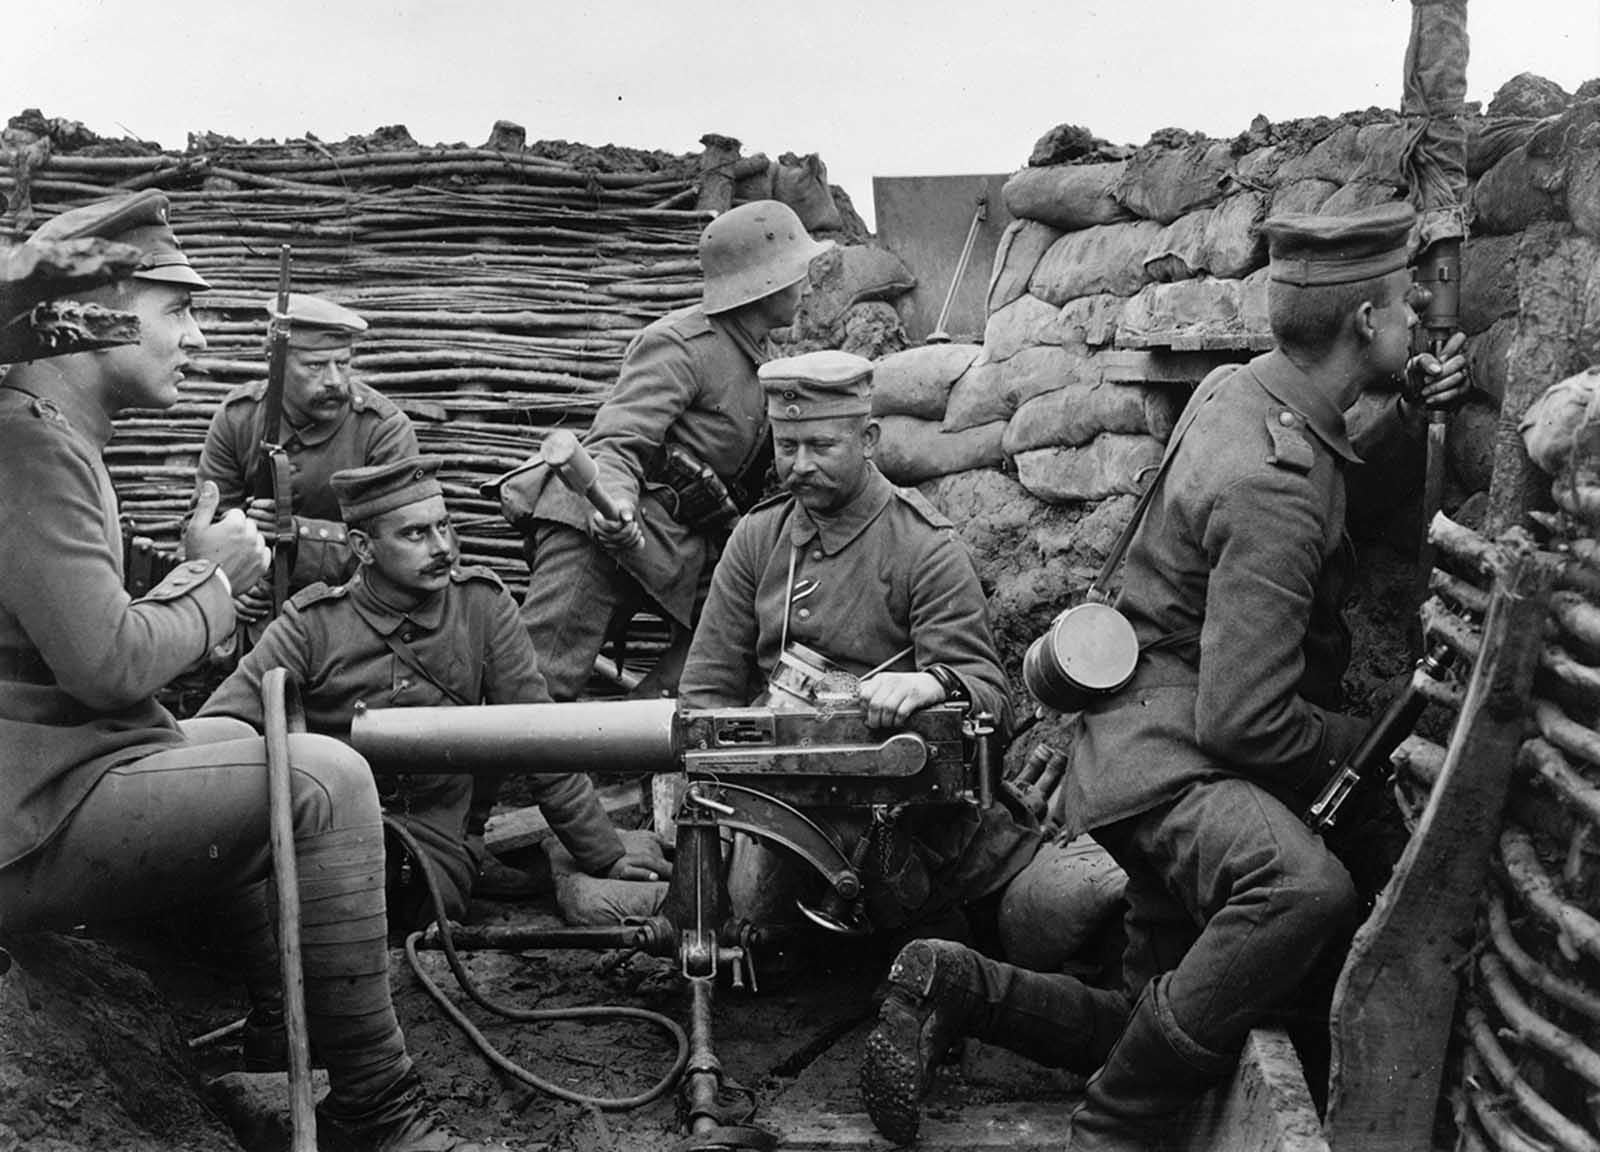 Six German soldiers pose in a in trench with machine gun, a mere 40 meters from the British line, according to the caption provided. The machine gun appears to be a Maschinengewehr 08, or MG 08, capable of firing 450-500 rounds a minute. The large cylinder is a jacket around the barrel, filled with water to cool the metal during rapid fire. The soldier at right, with gas mask canister slung over his shoulder, is peering into a periscope to get a view of enemy activity. The soldier at rear, with steel helmet, holds a